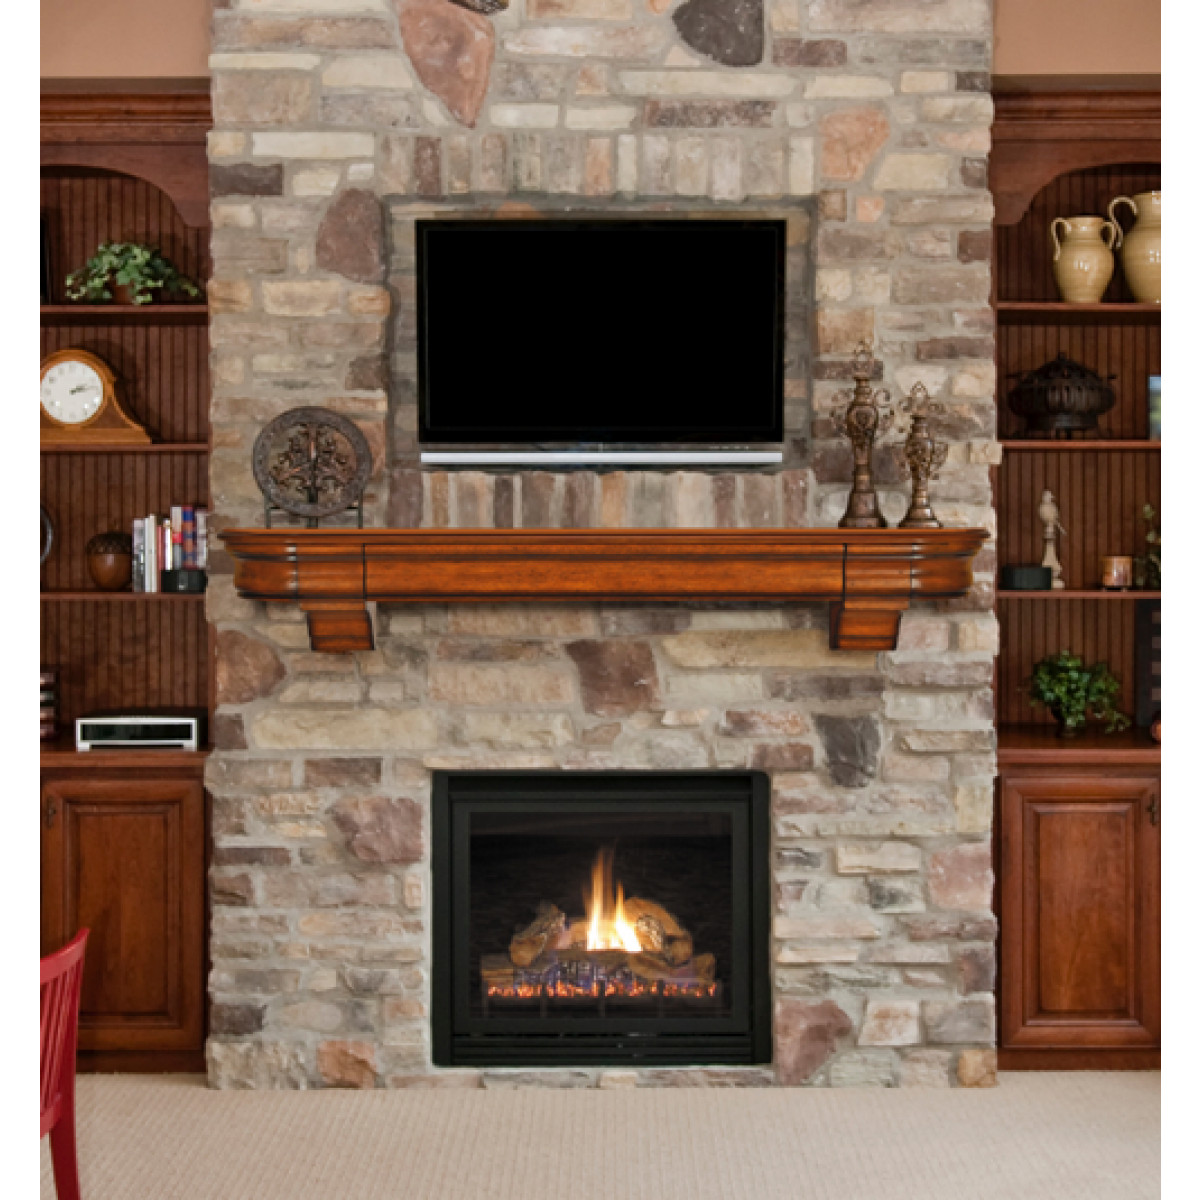 Best ideas about Fireplace Mantel Shelf . Save or Pin Natural Wood Fireplace Mantel Shelf With Hidden Drawer Now.